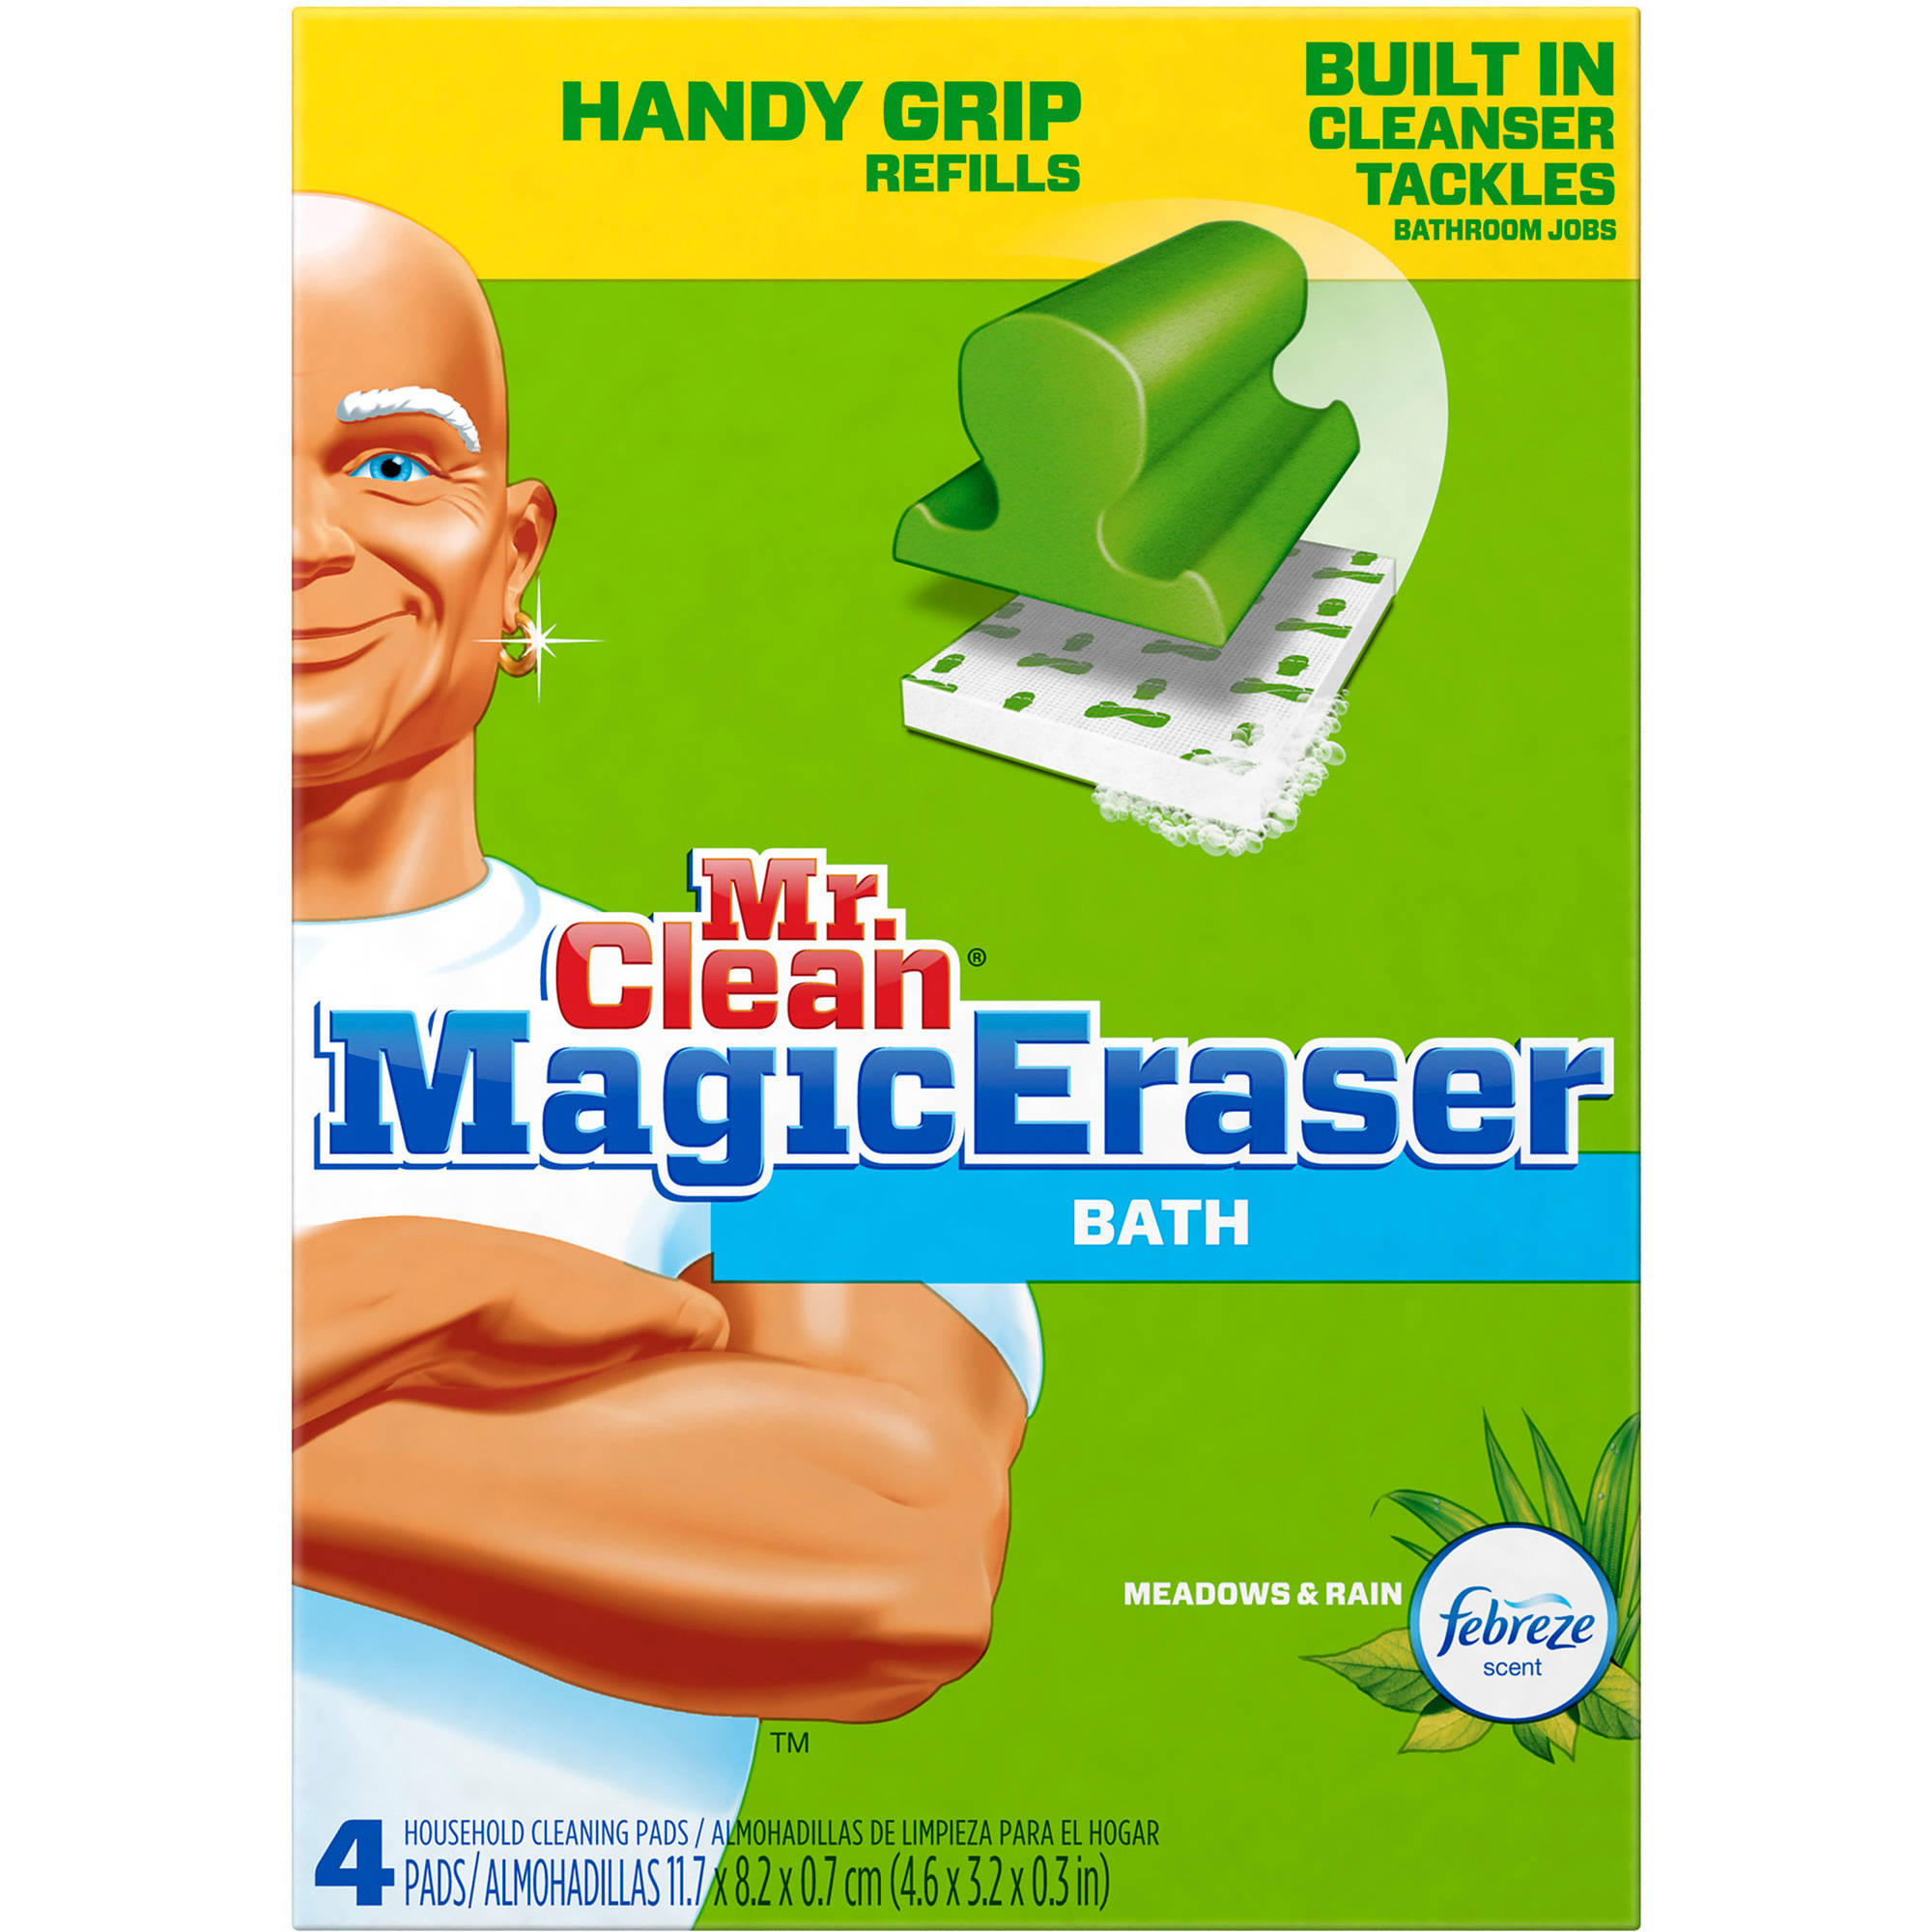 Good Mr. Clean Magic Eraser Bath Household Cleaning Pad Refills, 4 Ct